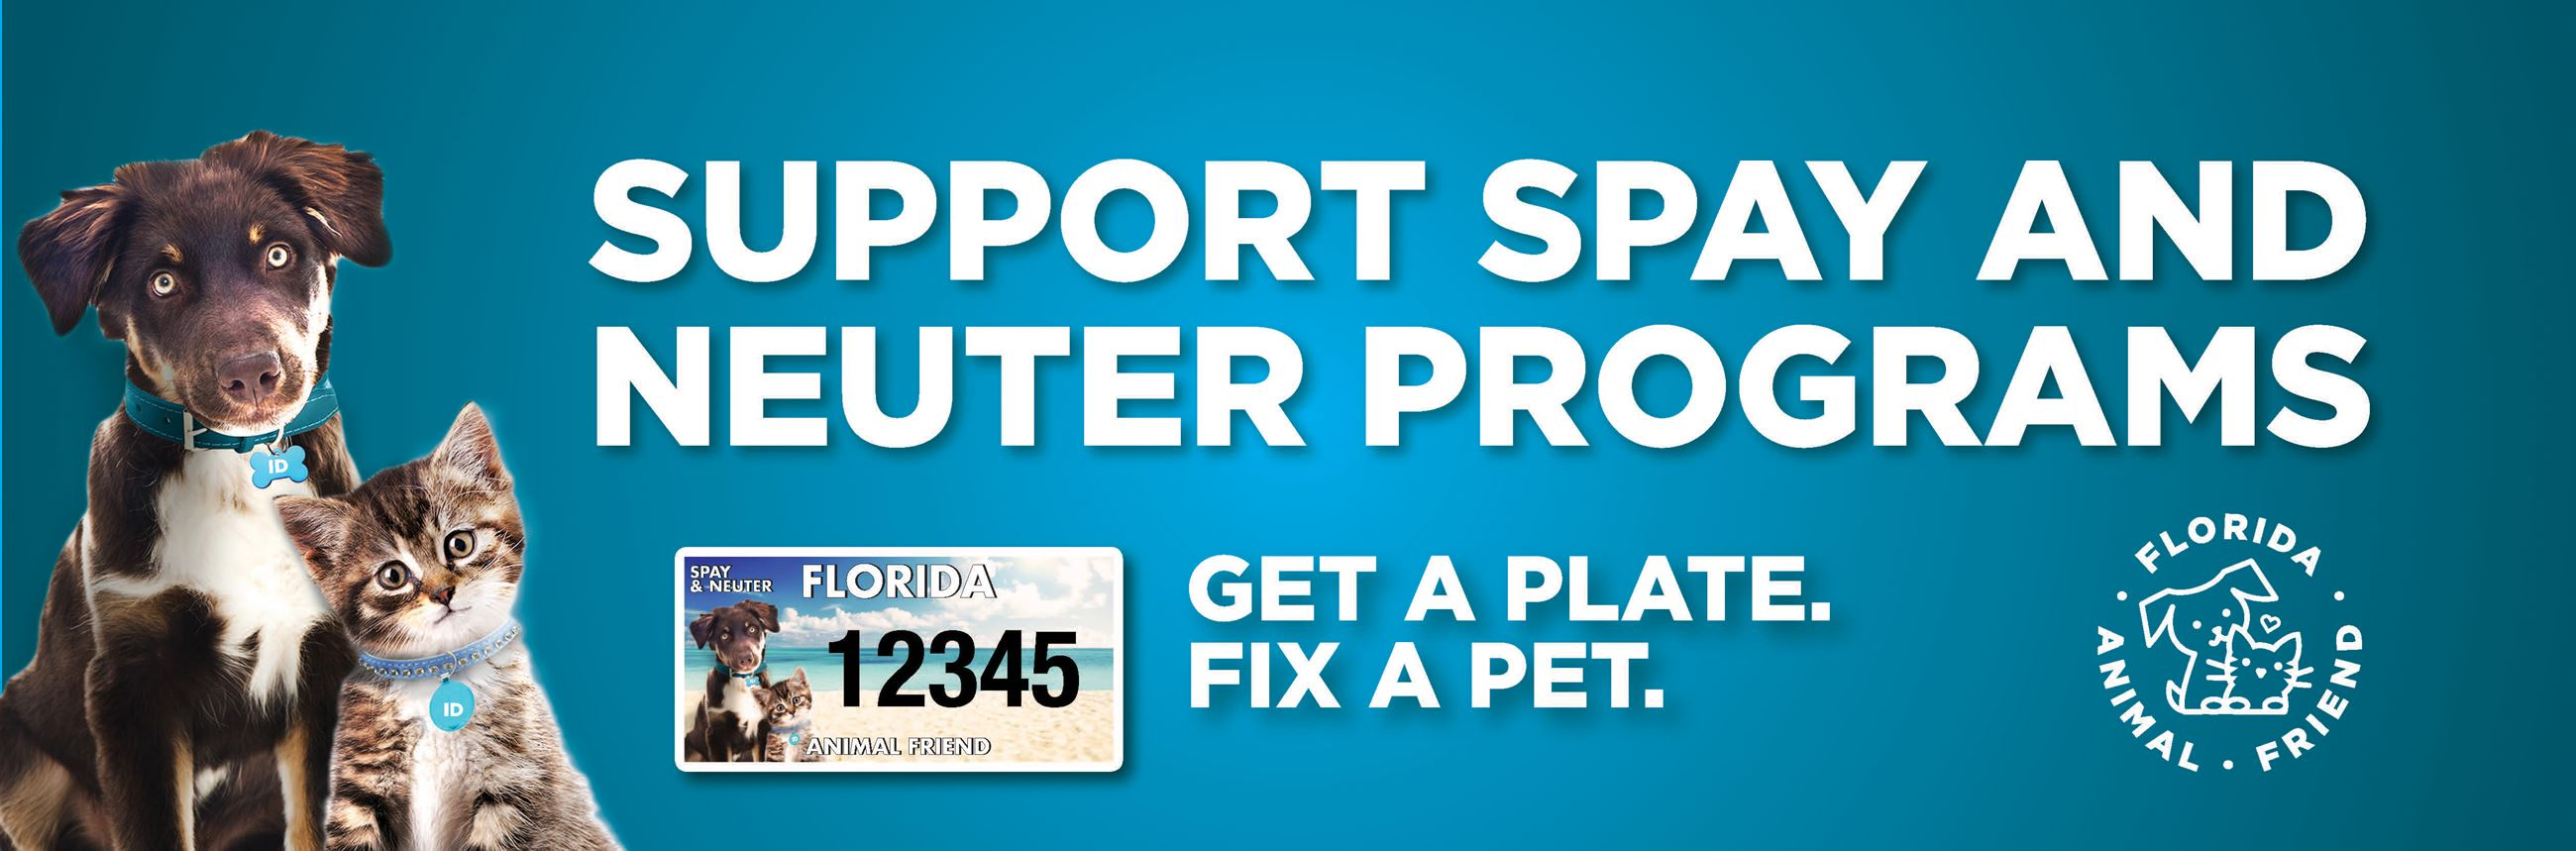 Florida Animal Friends License Plate Banner